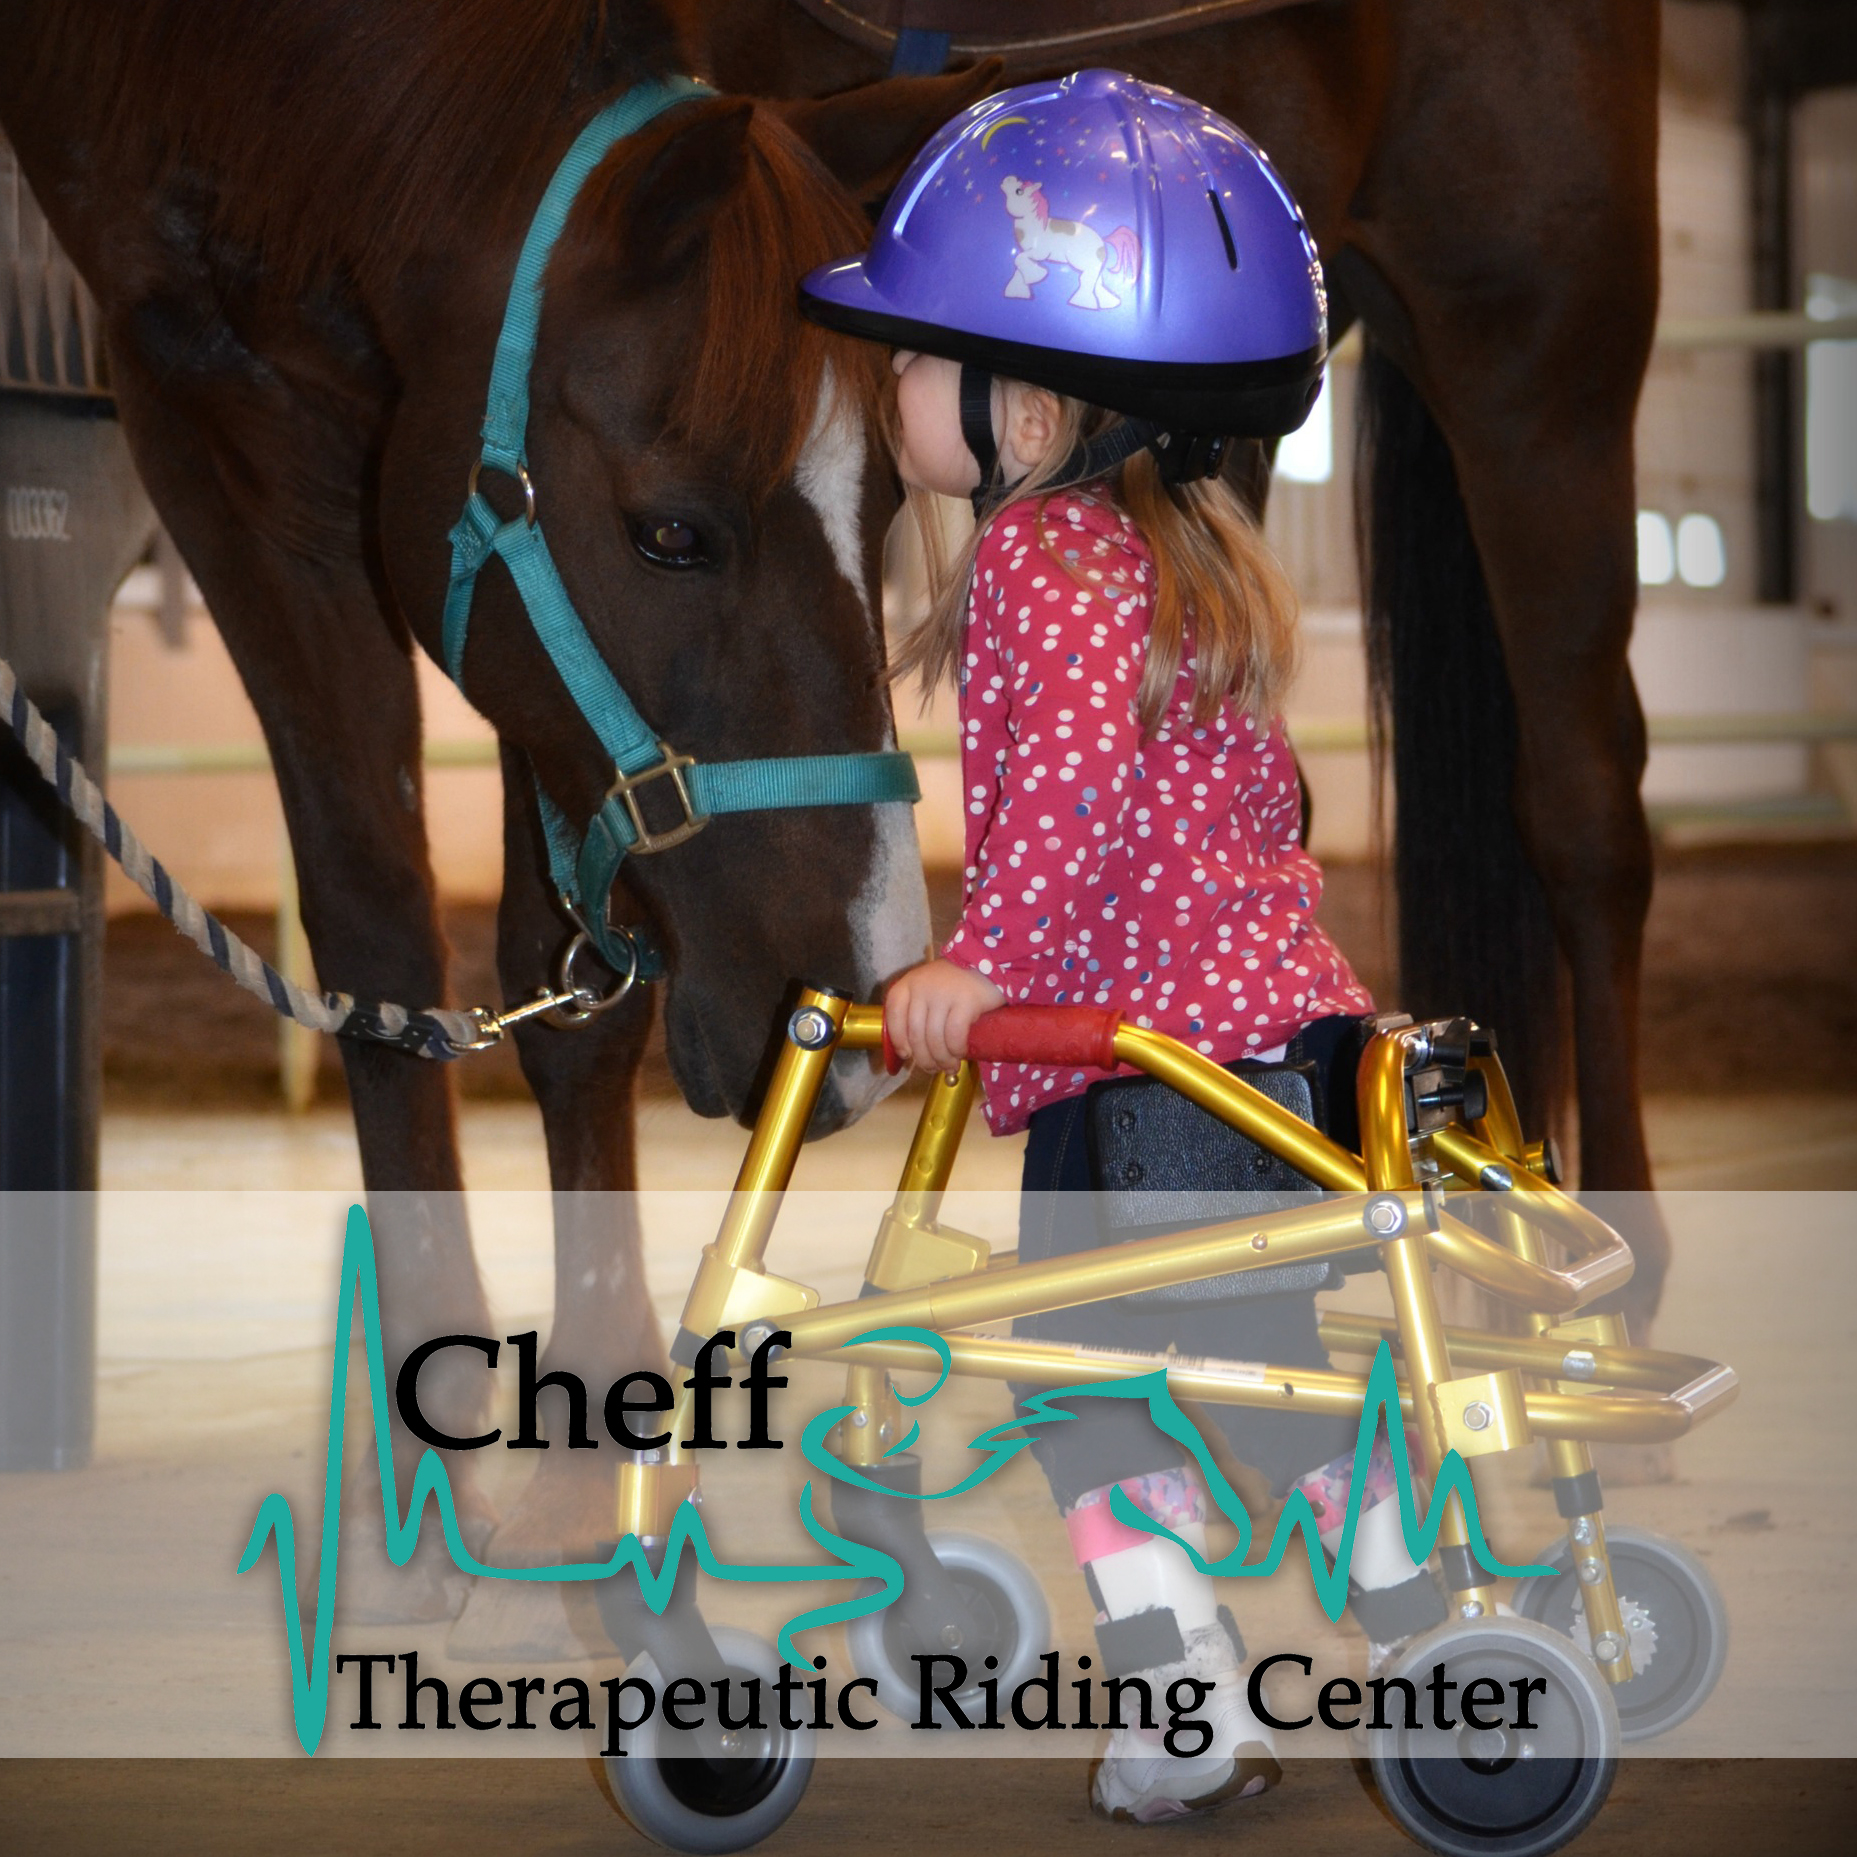 CHEFF THERAPEUTIC RIDING CENTER's Photo